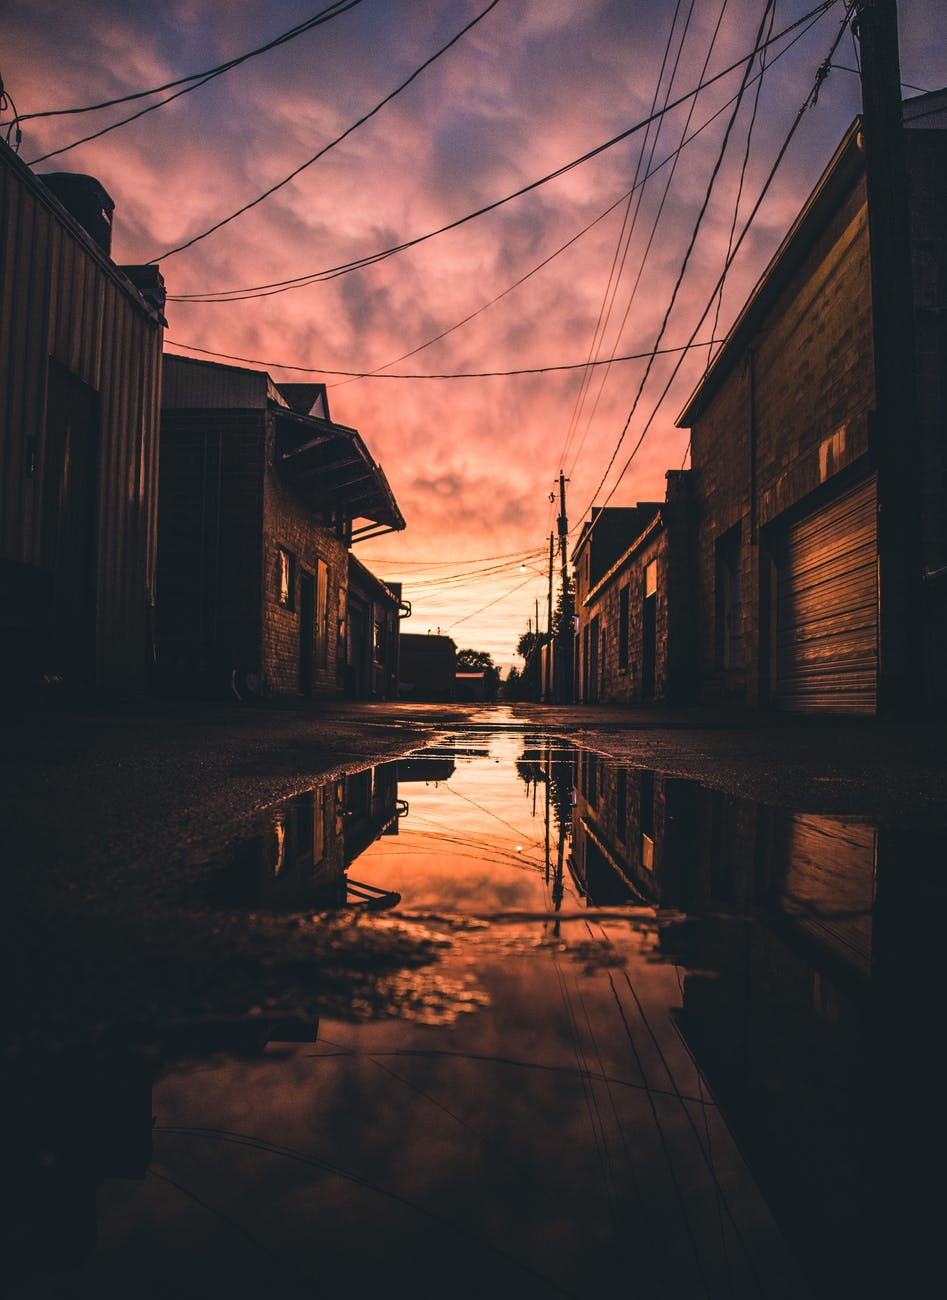 water puddle between buildings during golden hour